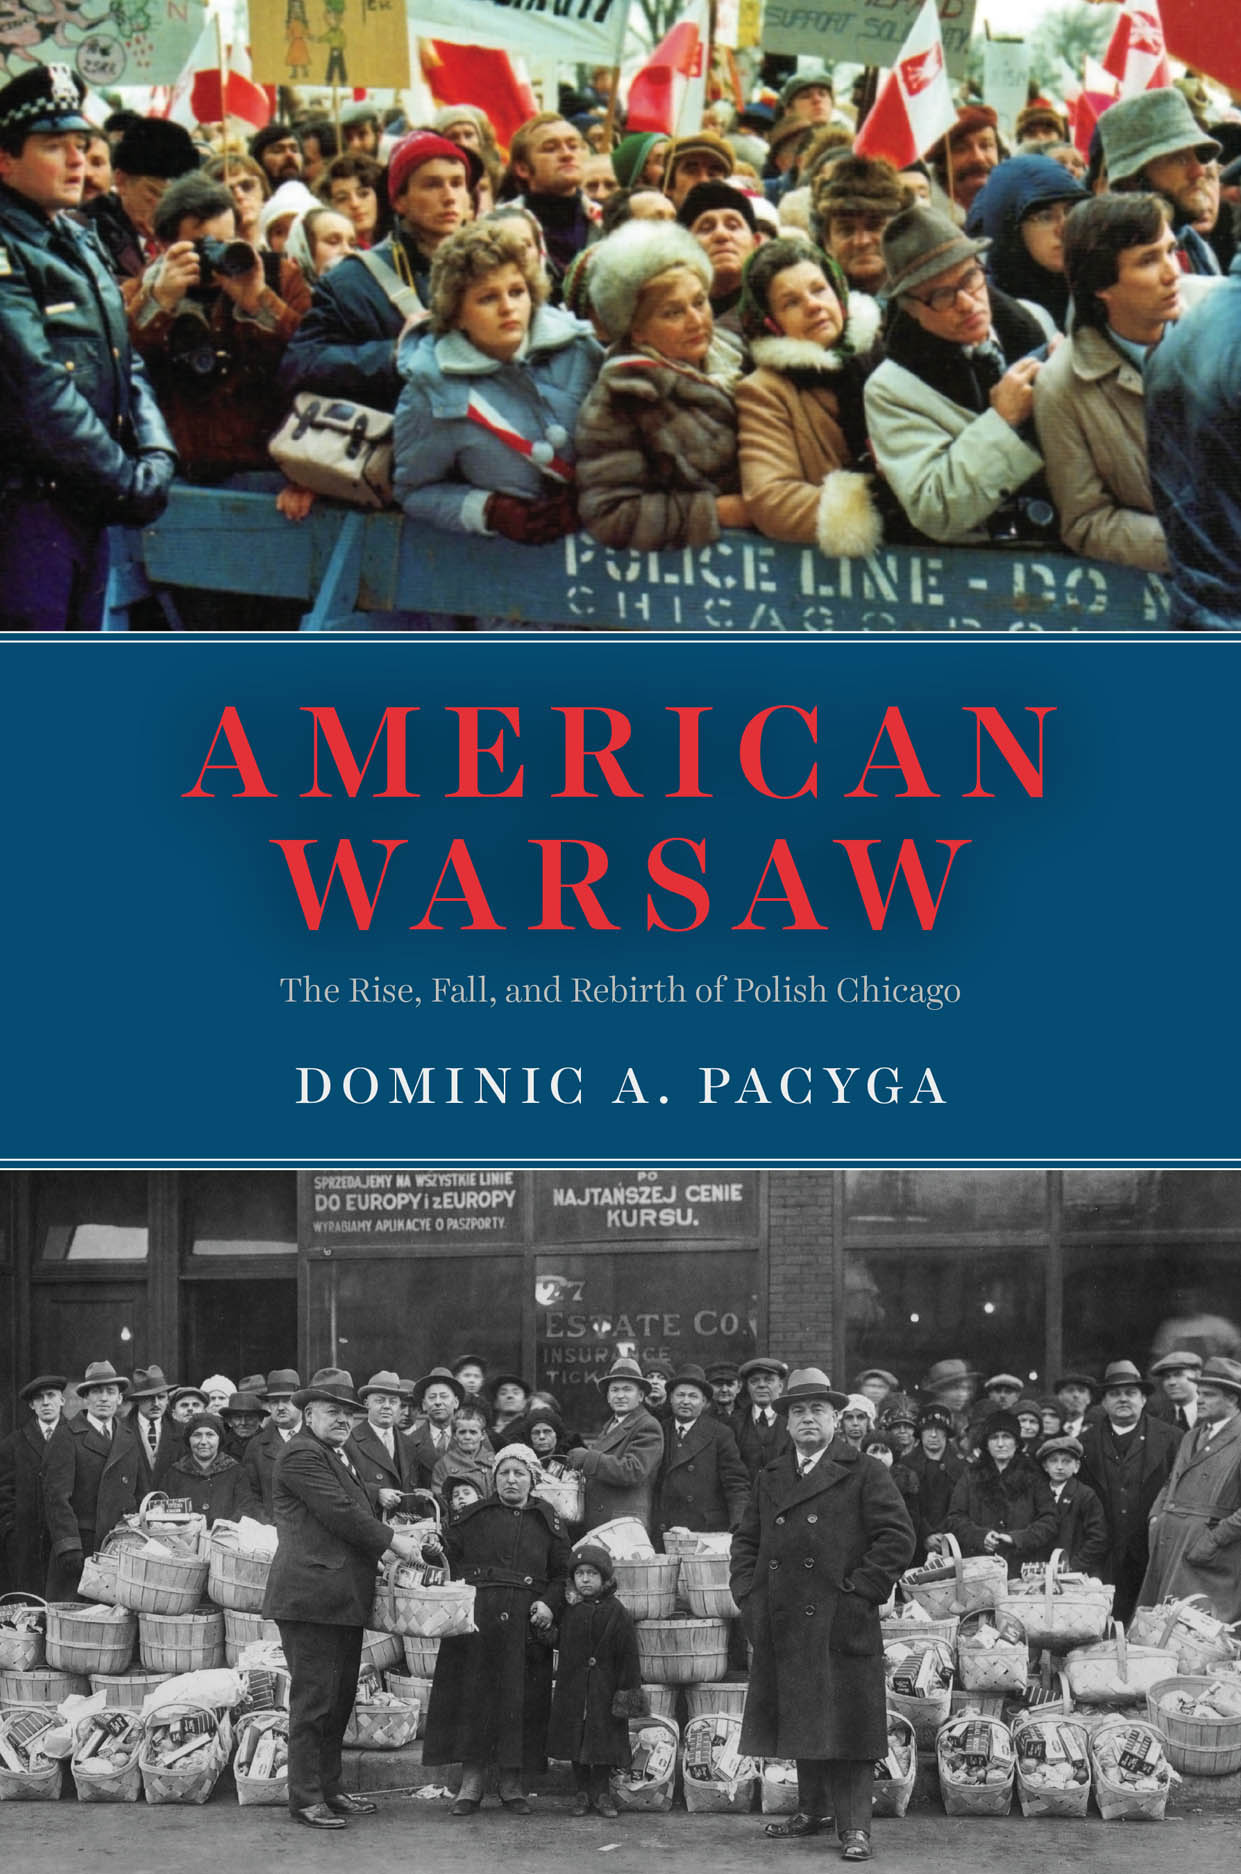 American Warsaw: The Rise, Fall, and Rebirth of Polish Chicago